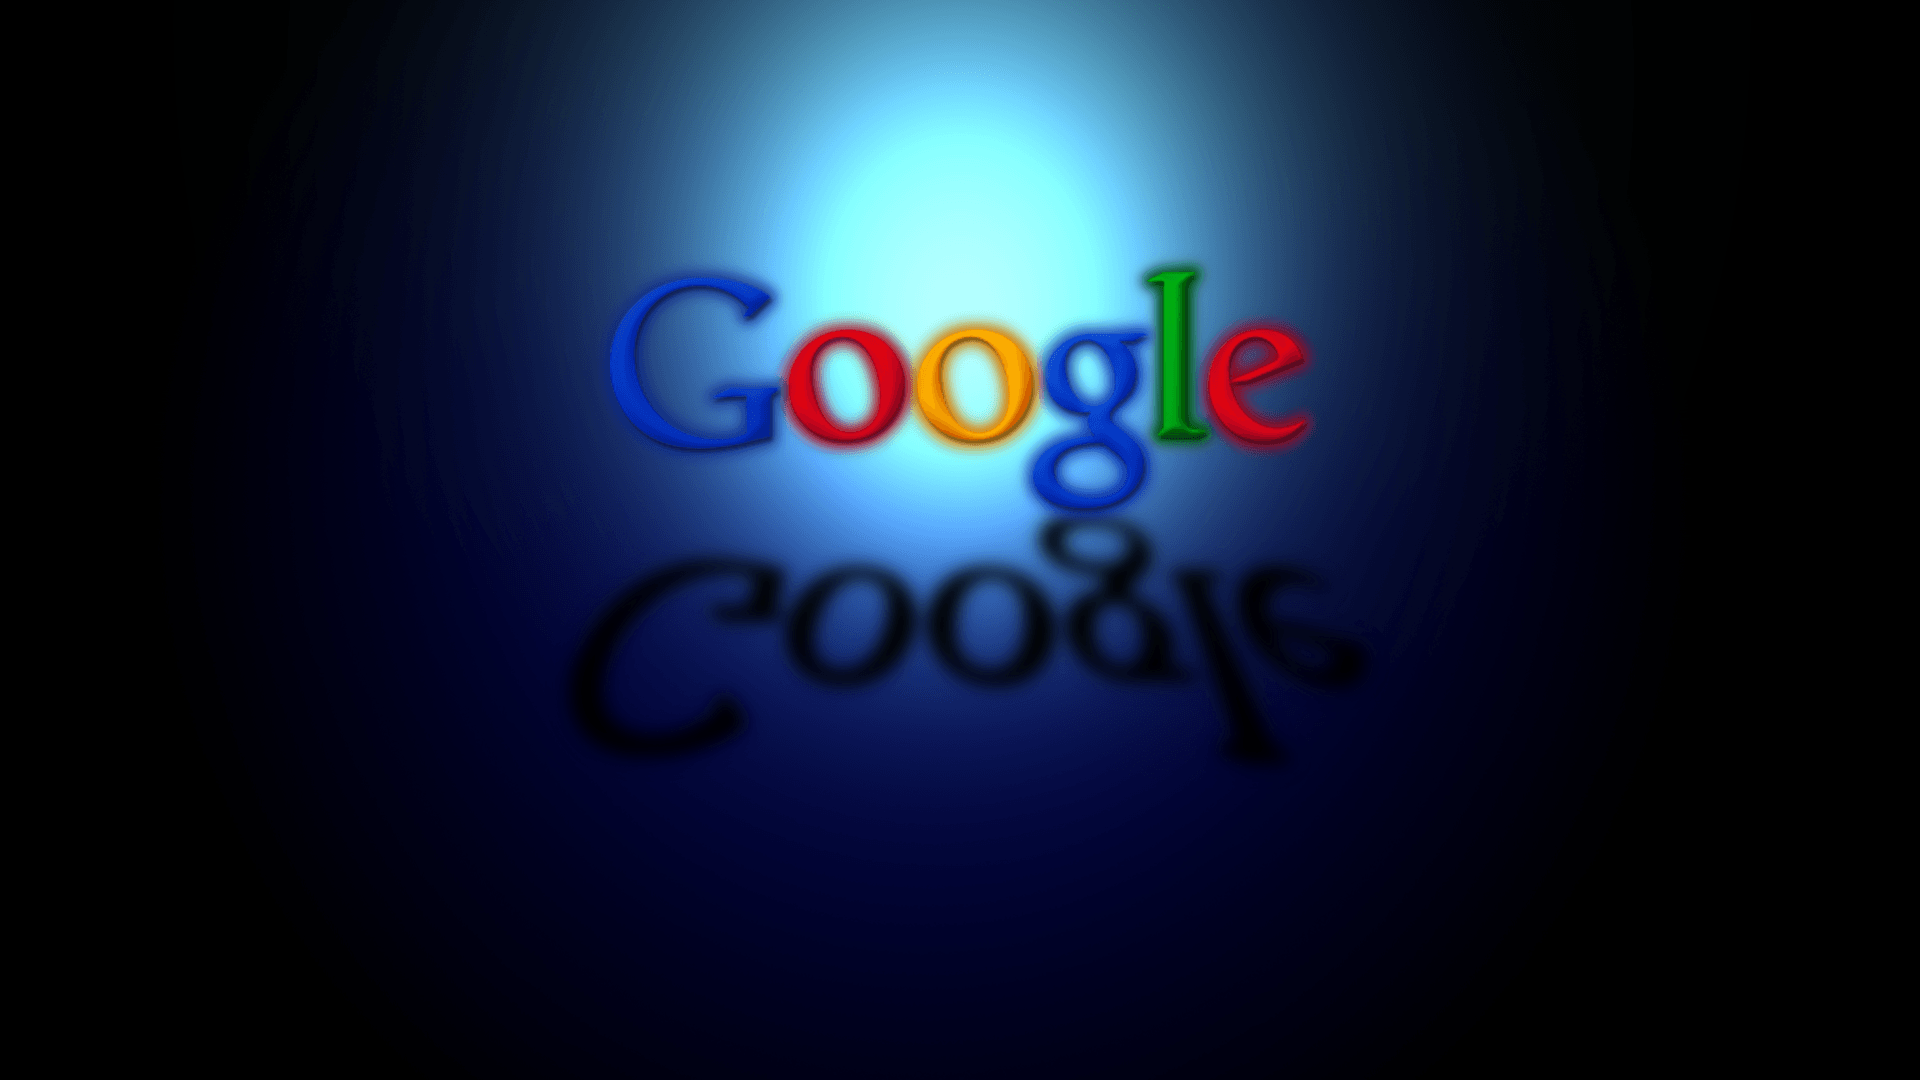 Backgrounds For Google - unlockyourgps.info